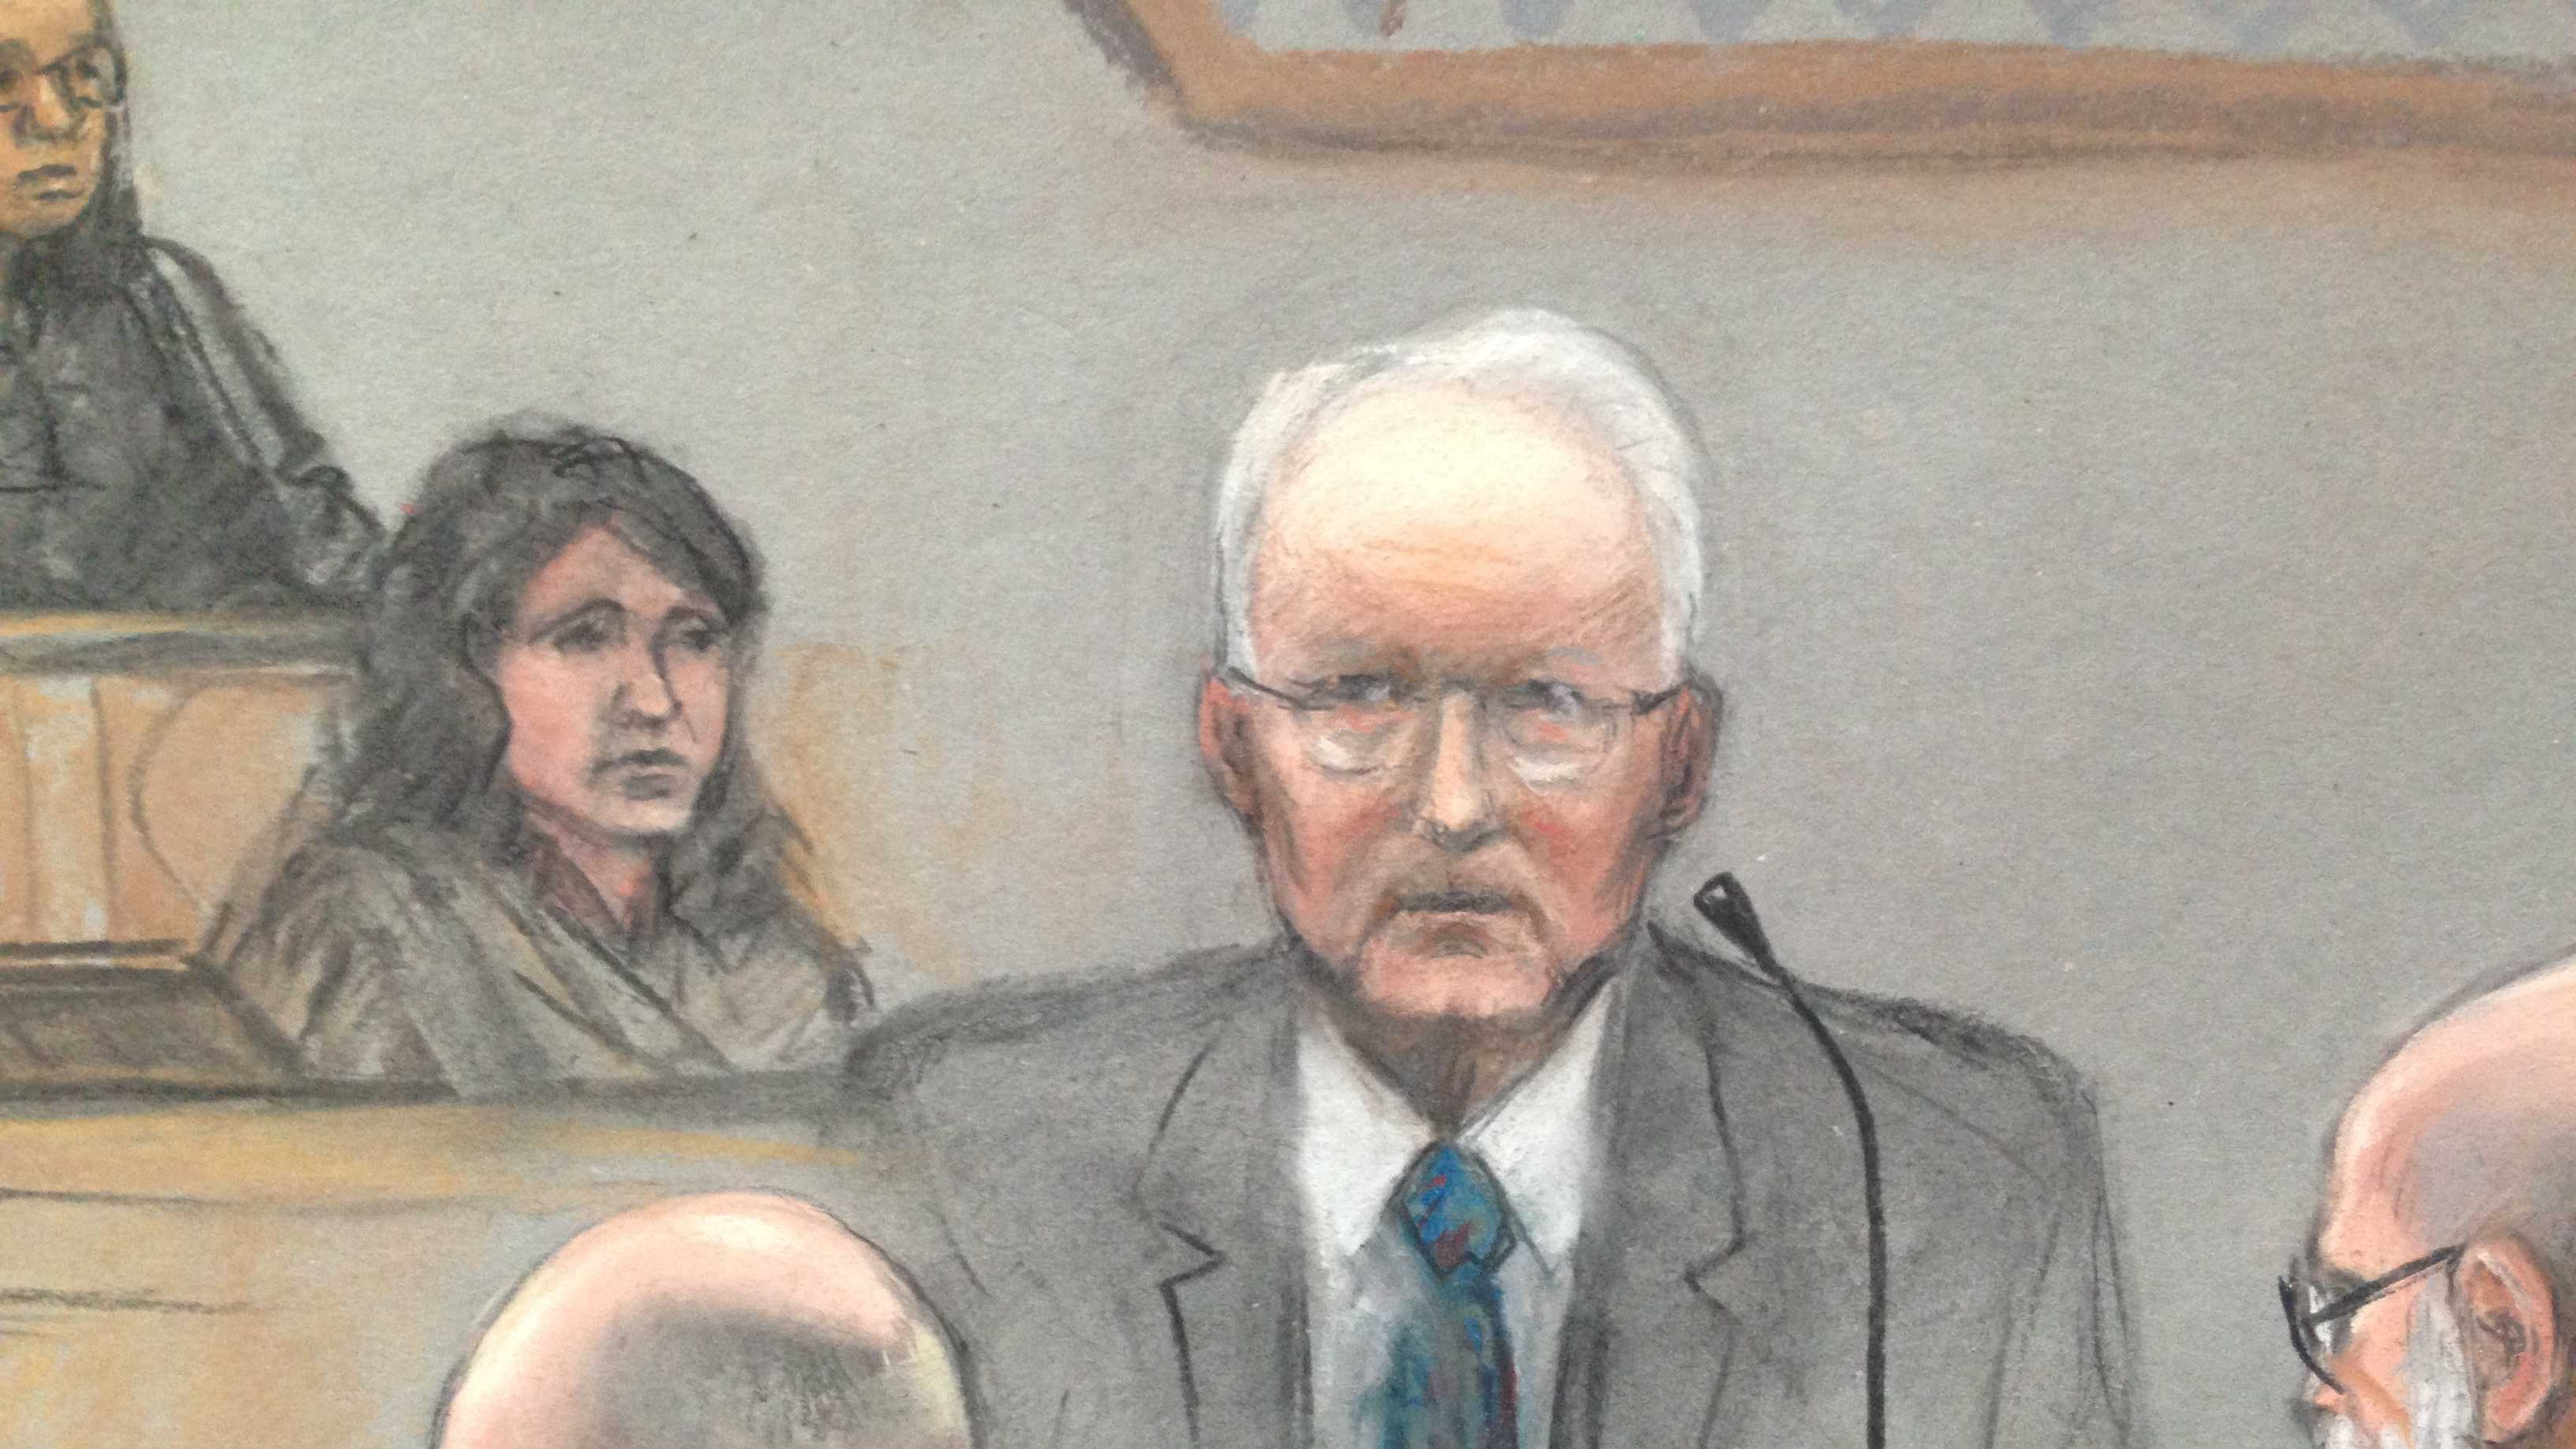 Bulger Sketch John Morris Testifies 070113.JPG